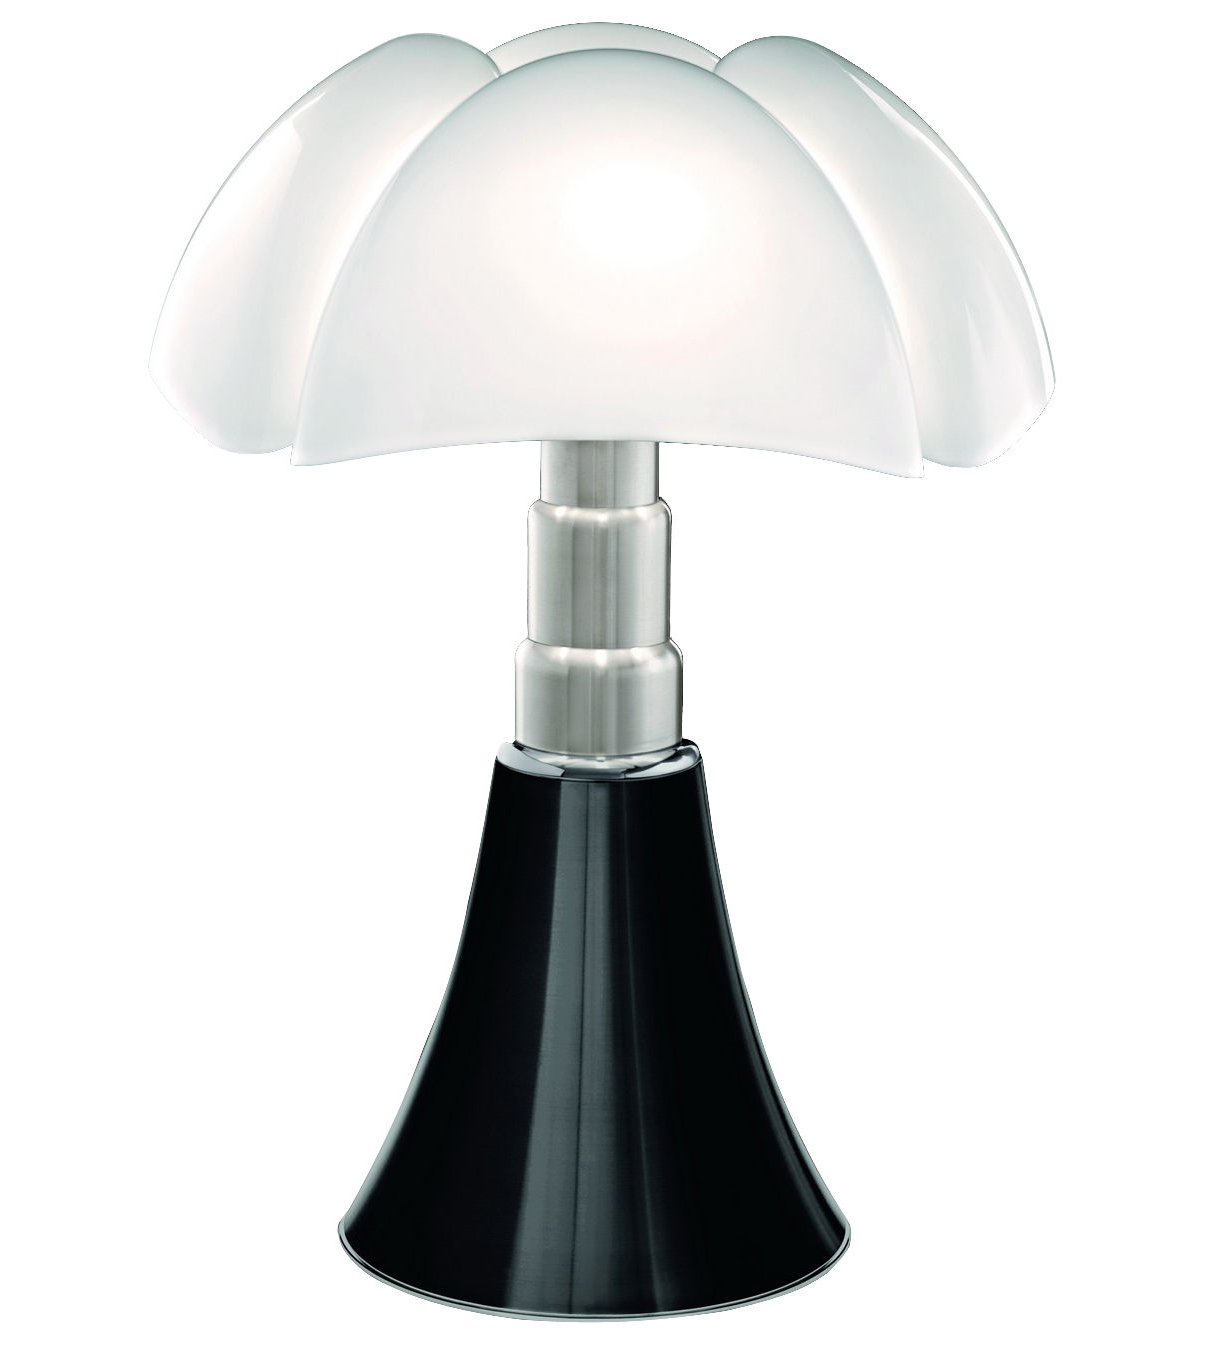 lampe poser pipistrello led dimmable de martinelli luce noir brillant. Black Bedroom Furniture Sets. Home Design Ideas